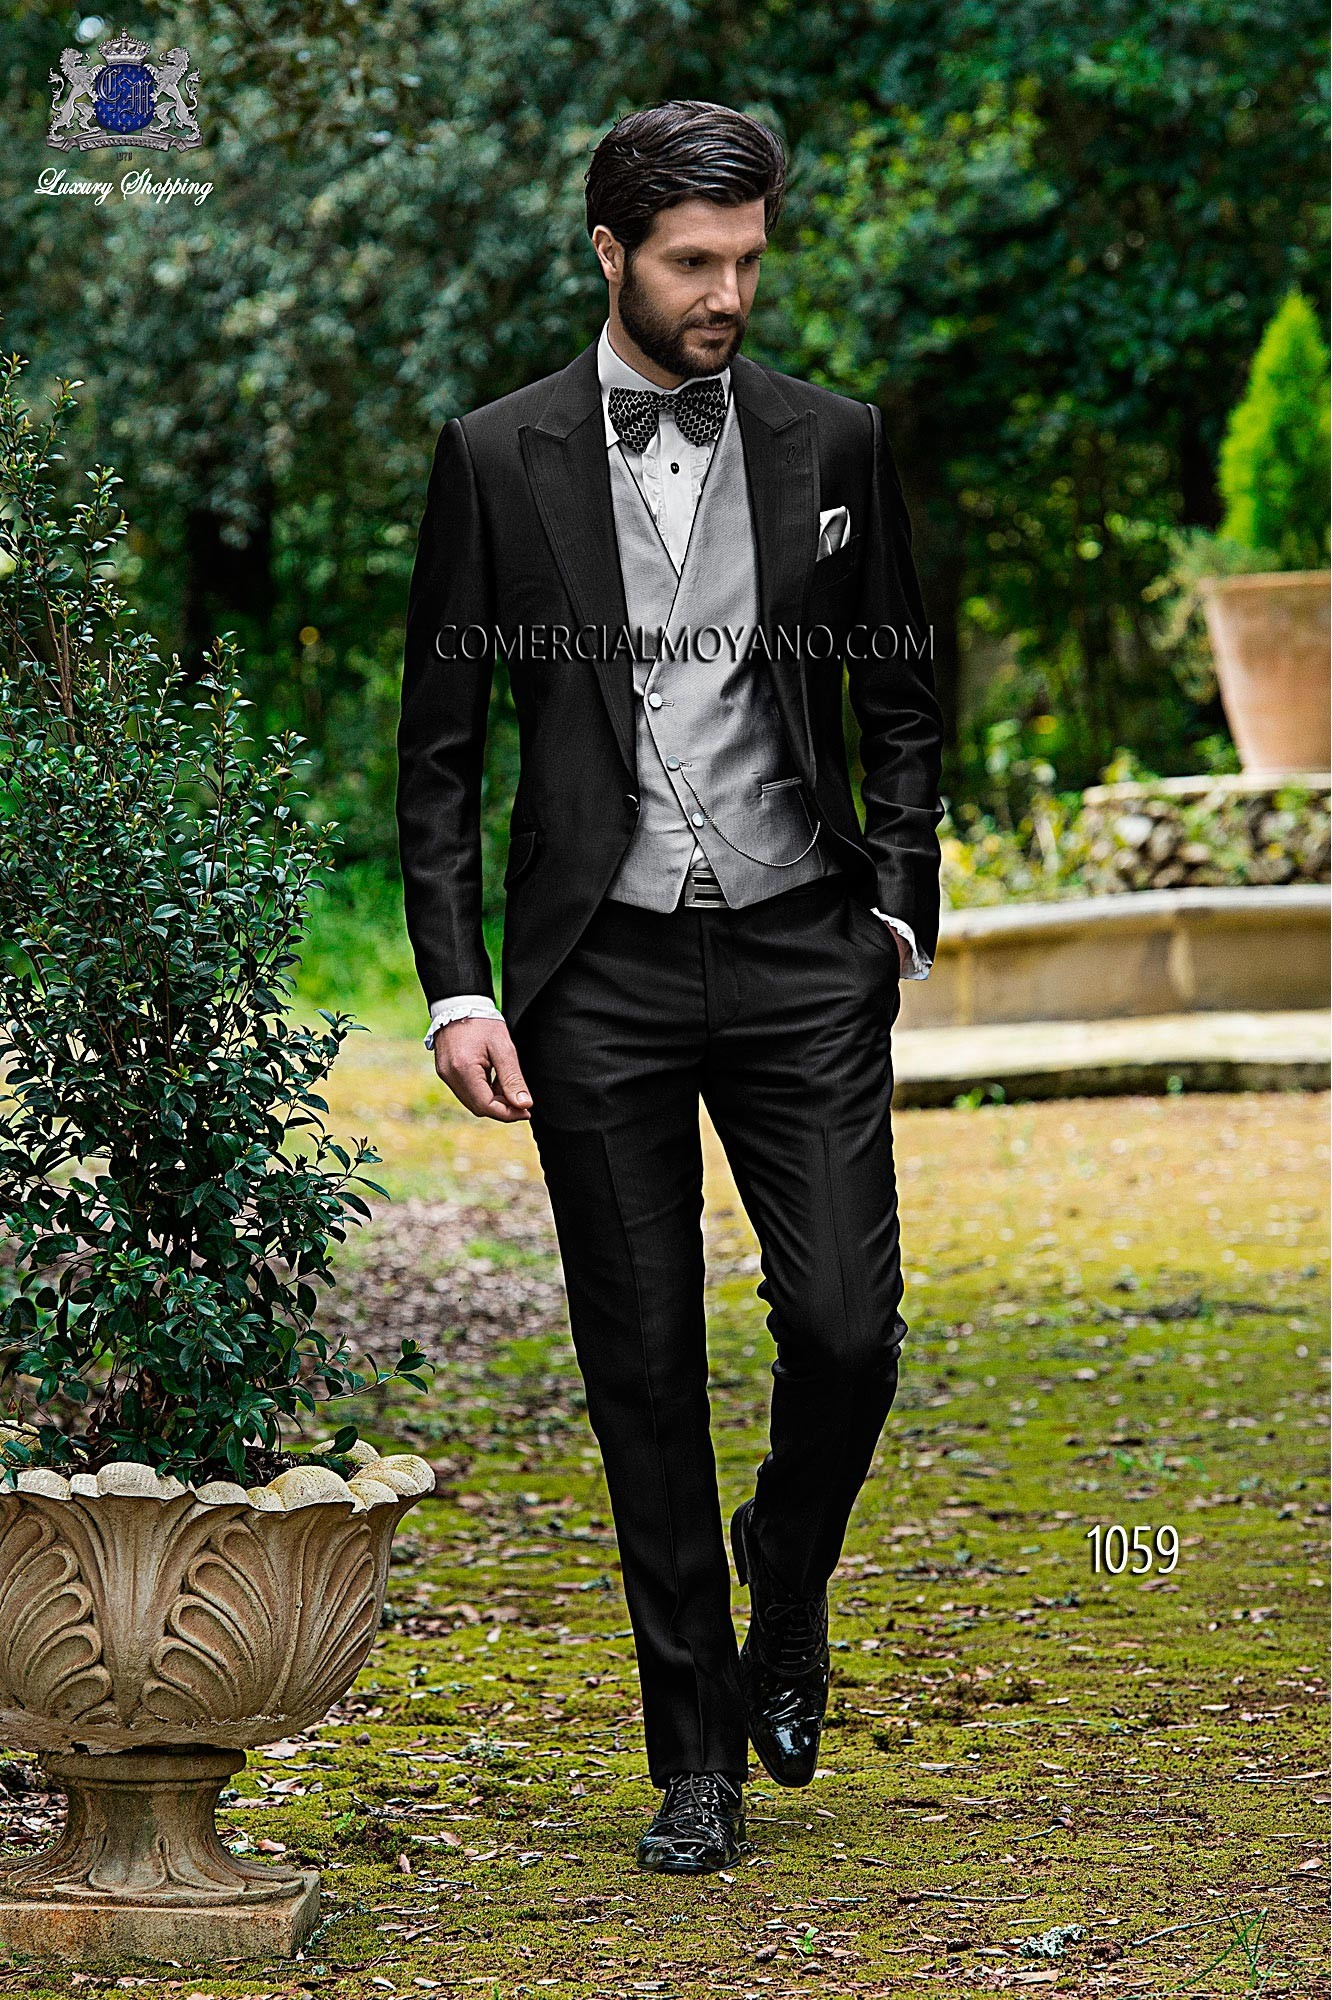 Italian bespoke single breasted suit, short frock coat, in new performance fabric, black, style 1059 Ottavio Nuccio Gala, Fashion collection.